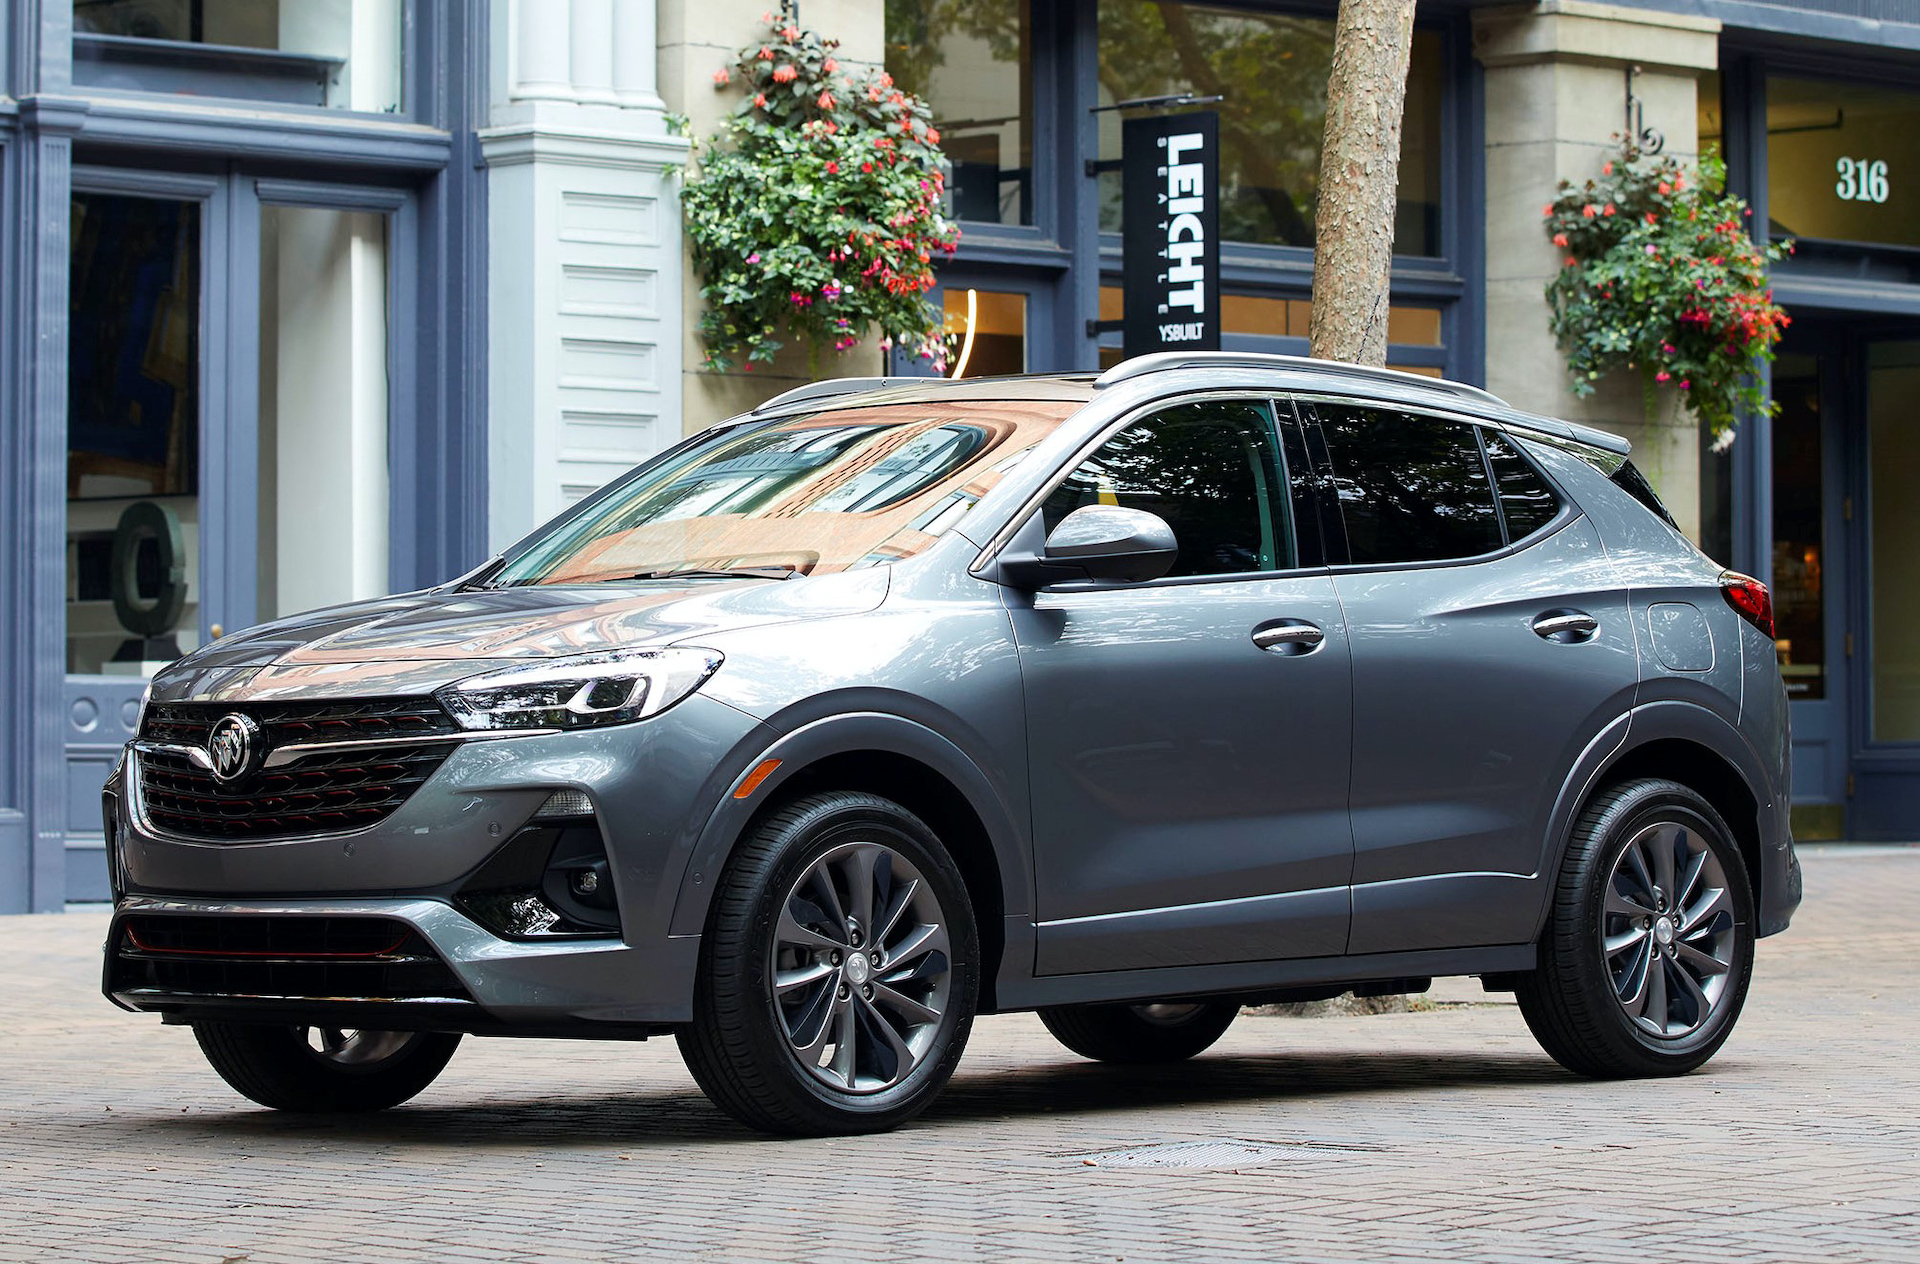 2021 Buick Encore Review, Ratings, Specs, Prices, And Photos 2021 Buick Encore Gx Used, Weight, 0-60